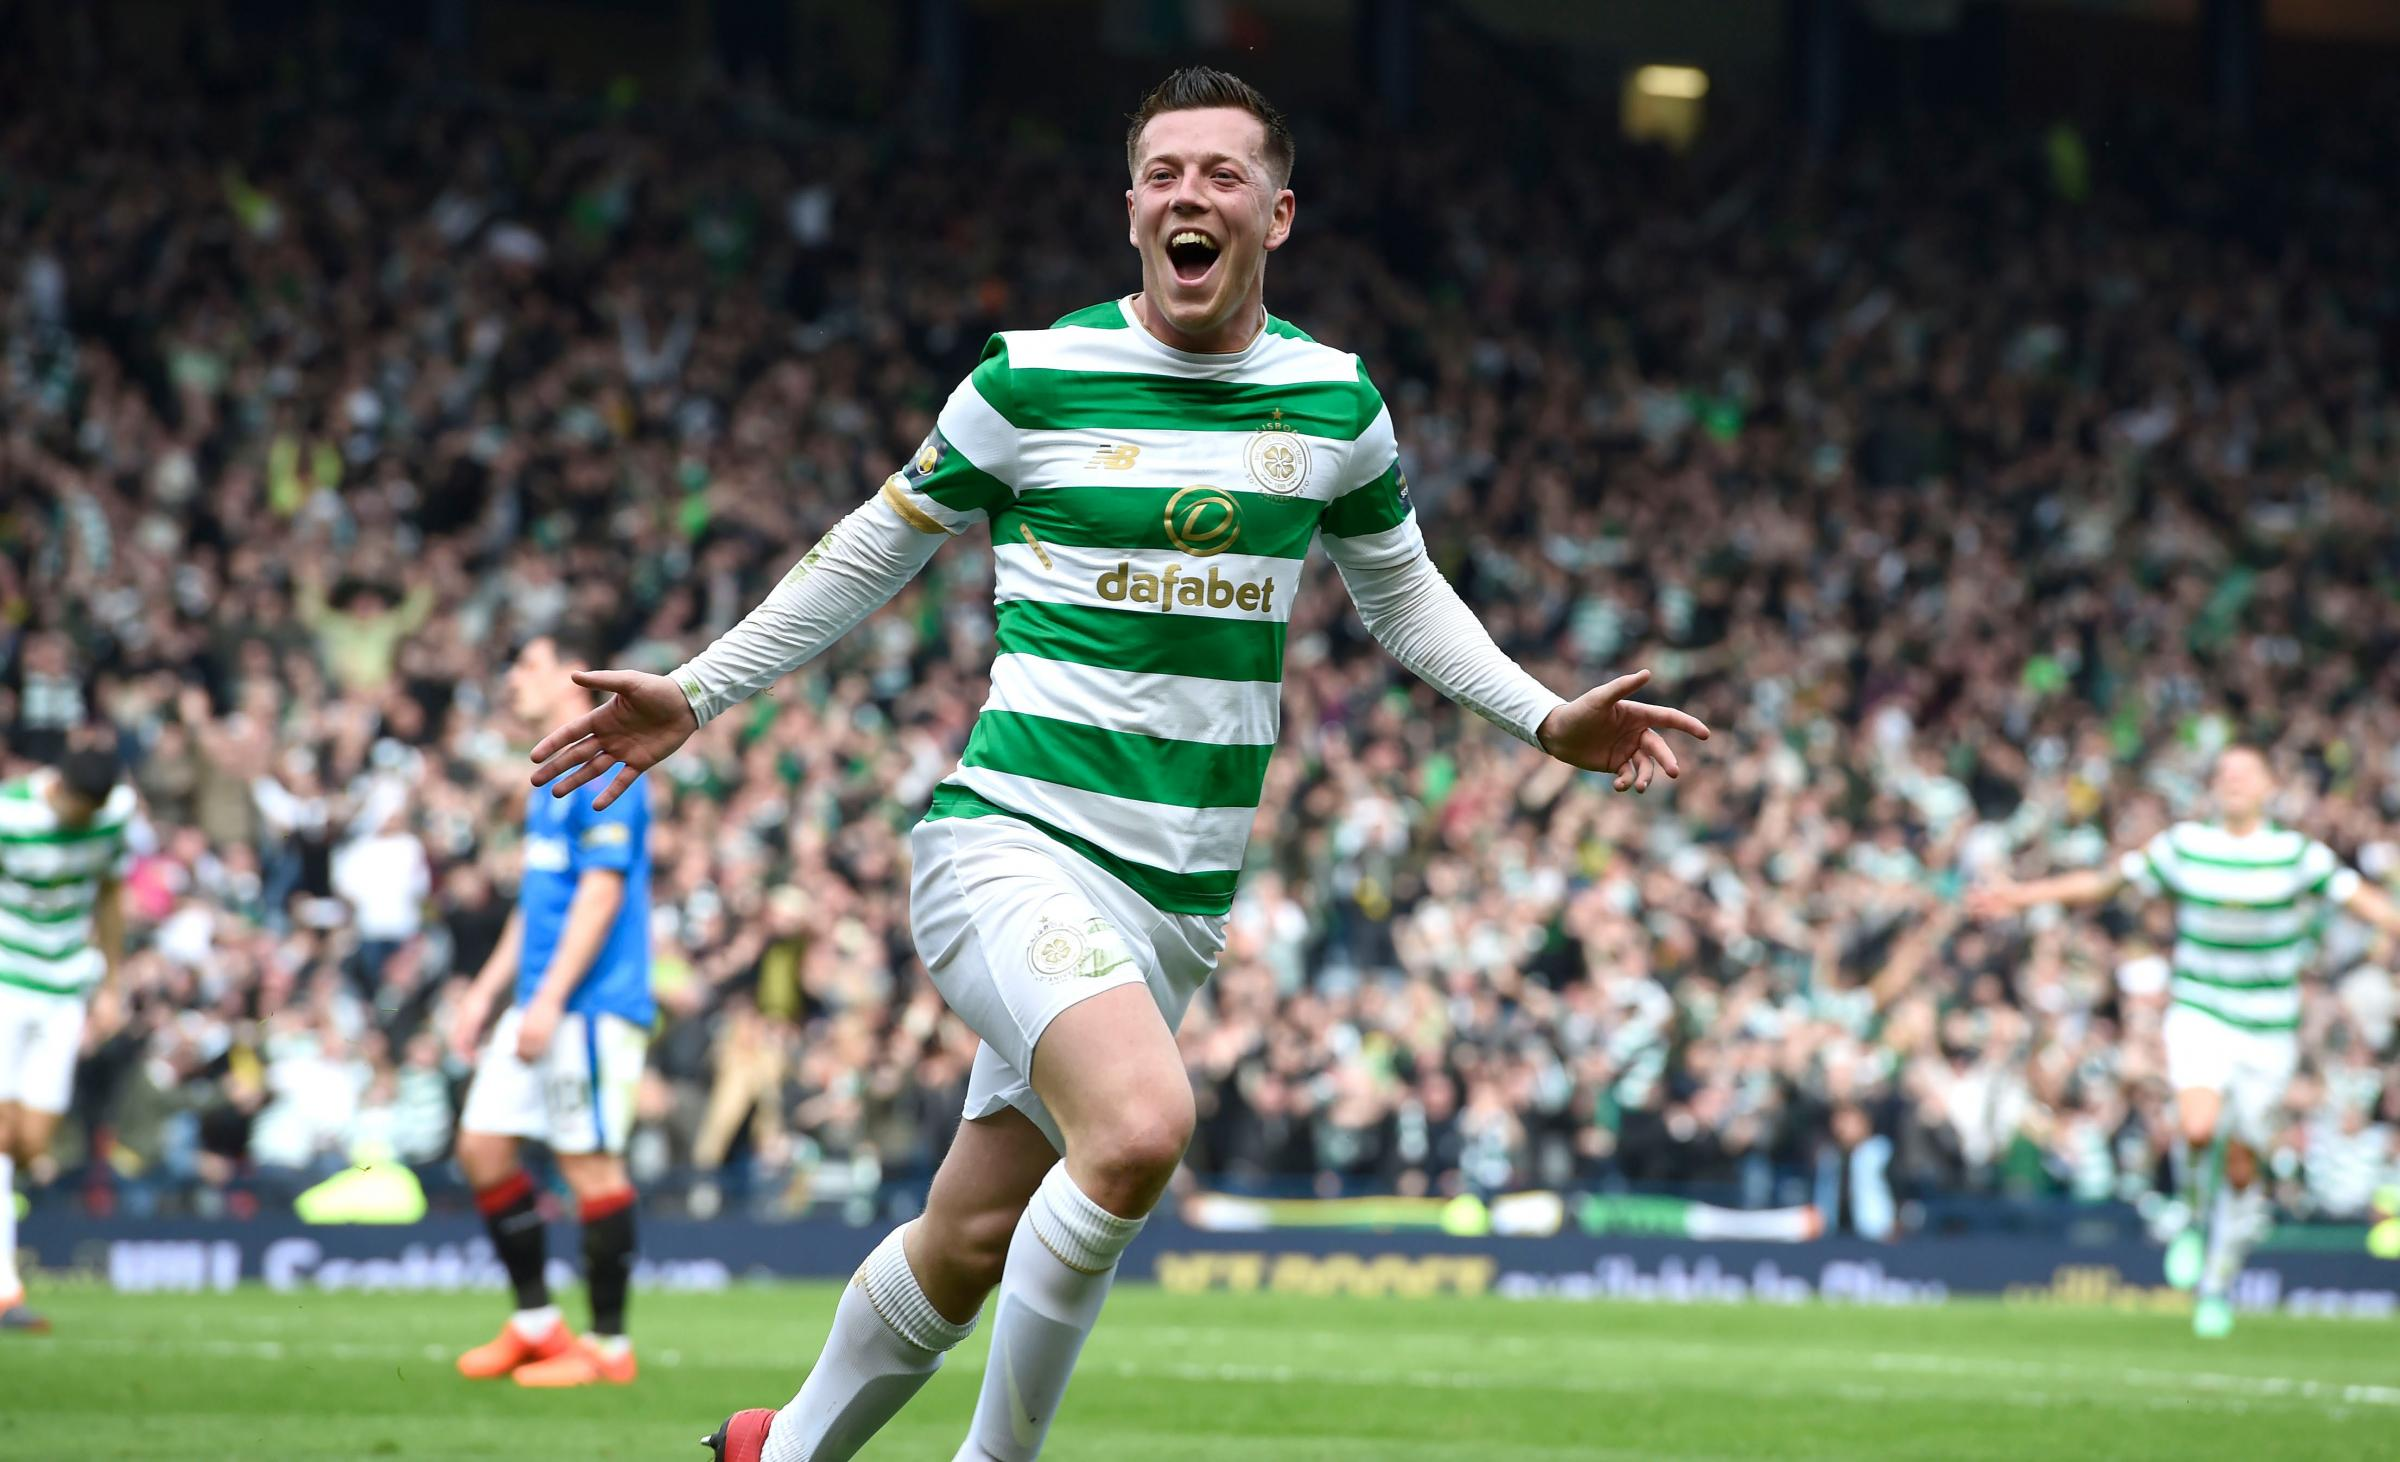 Celtic demolish 10-man Rangers to make Scottish Cup final